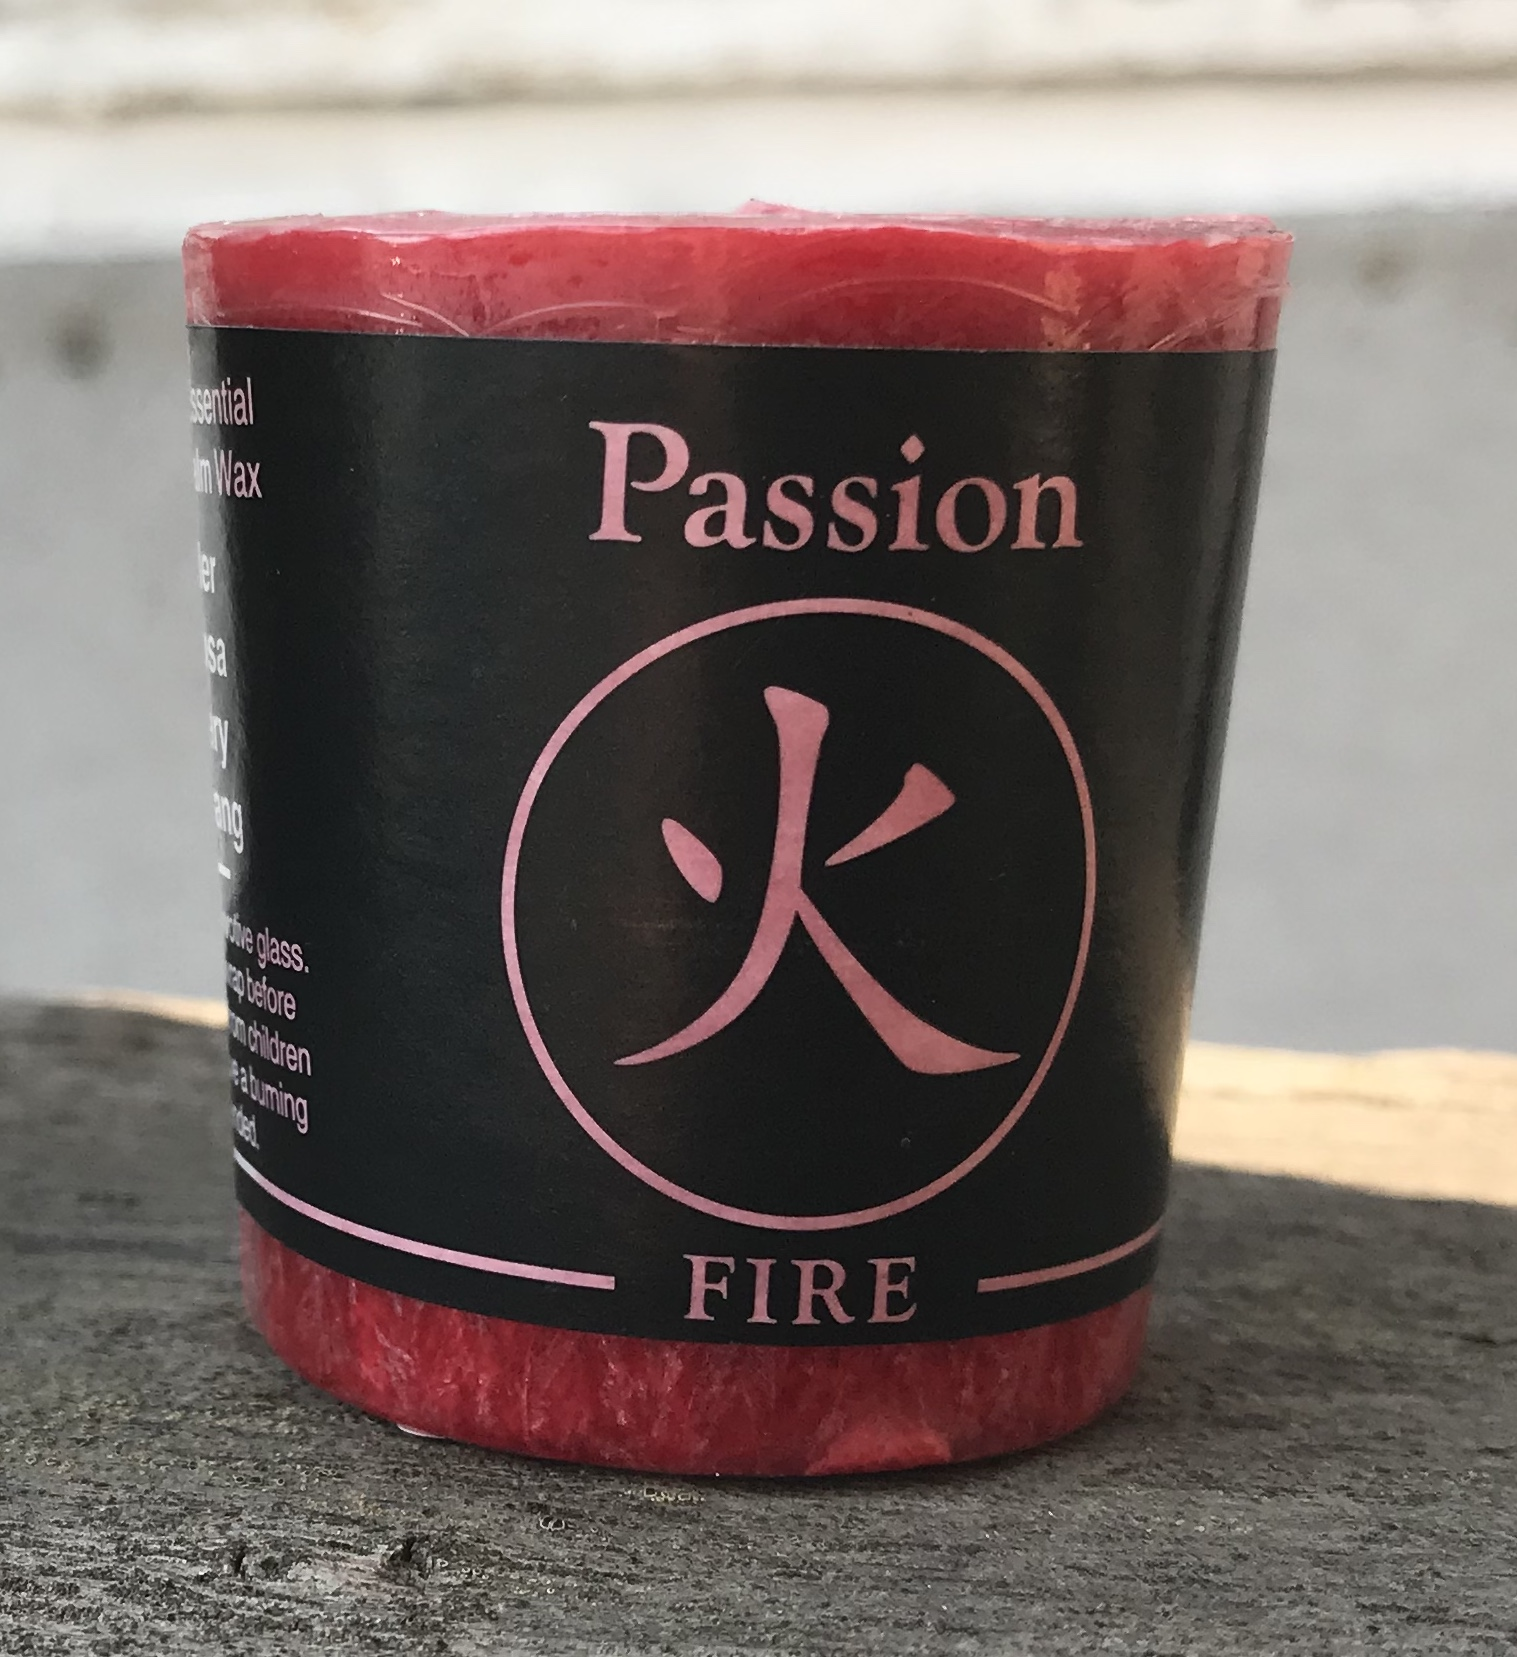 FengShui Fire Passion Votive Candle Palm Wax 100% Pure Essential Oil | Shasta Rainbow Angels